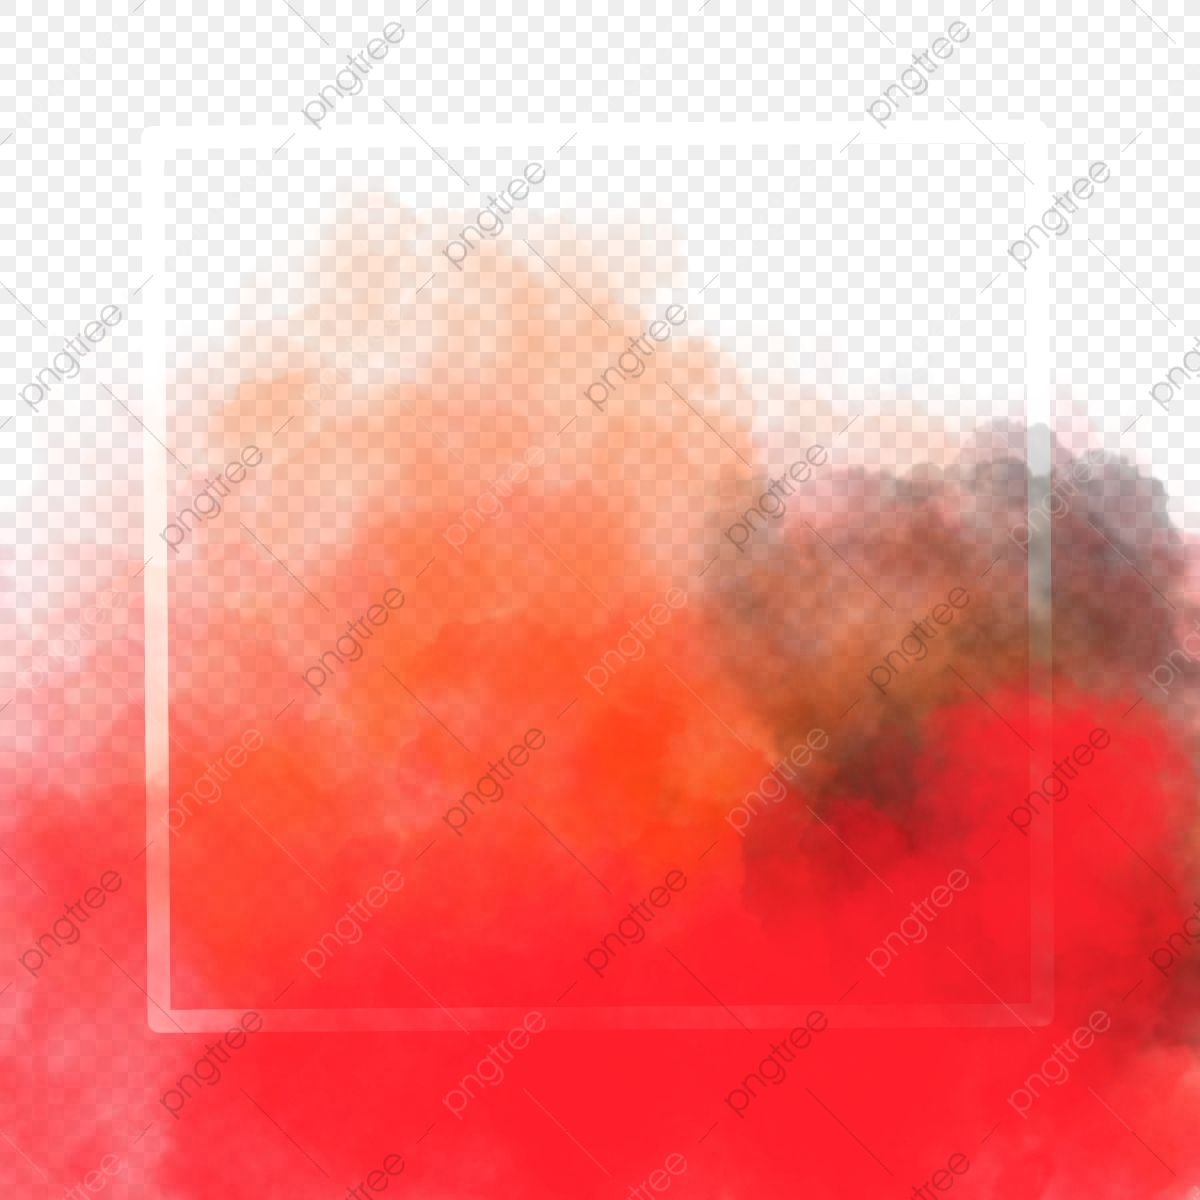 Red Smoke Effect Png Red Red Smoke Graphic Png Transparent Clipart Image And Psd File For Free Download Red Smoke Red Christmas Background Clip Art